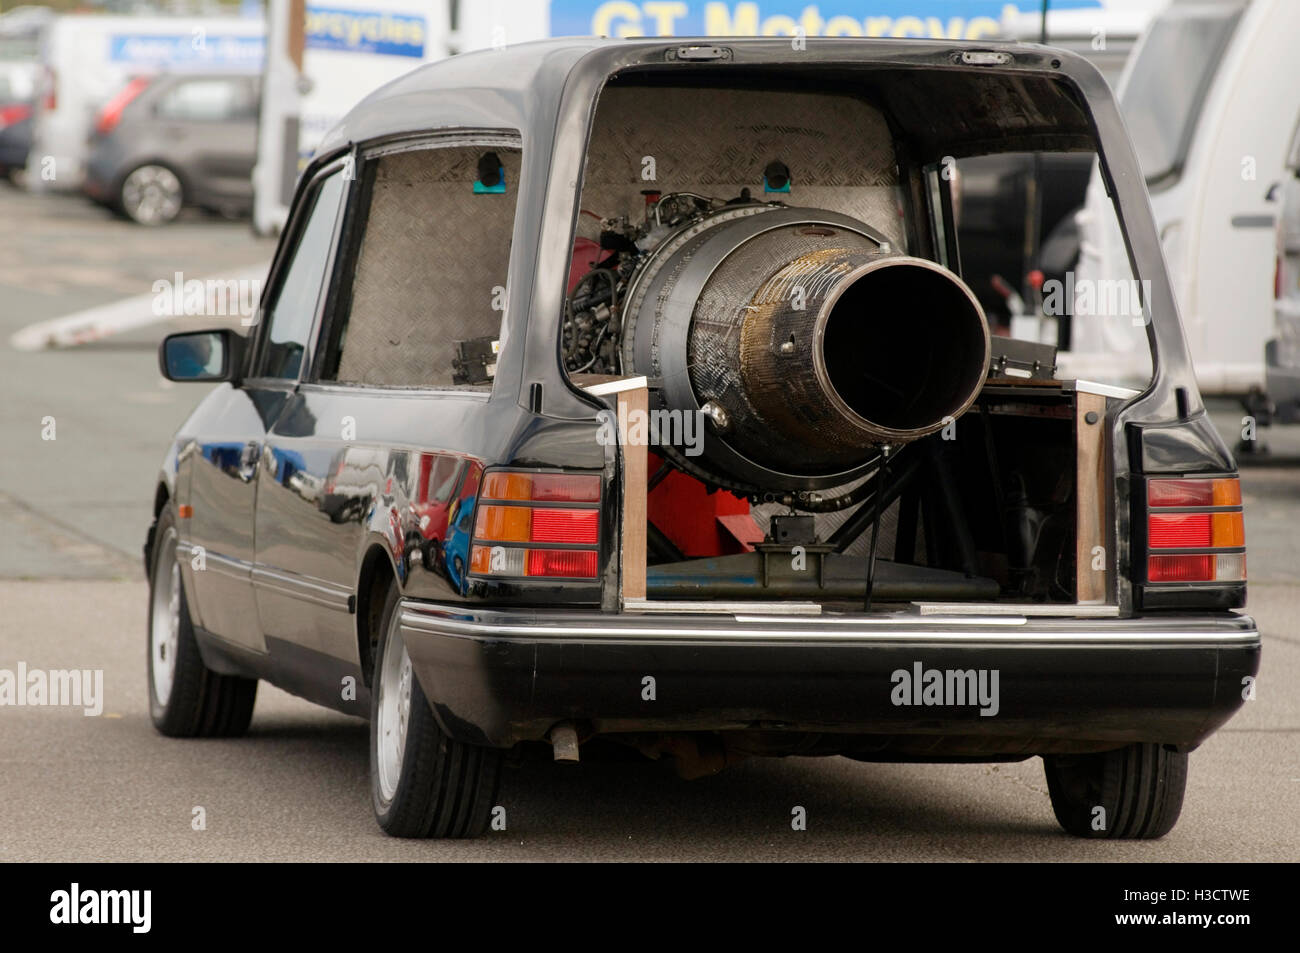 jet engined powered Hearse - Stock Image